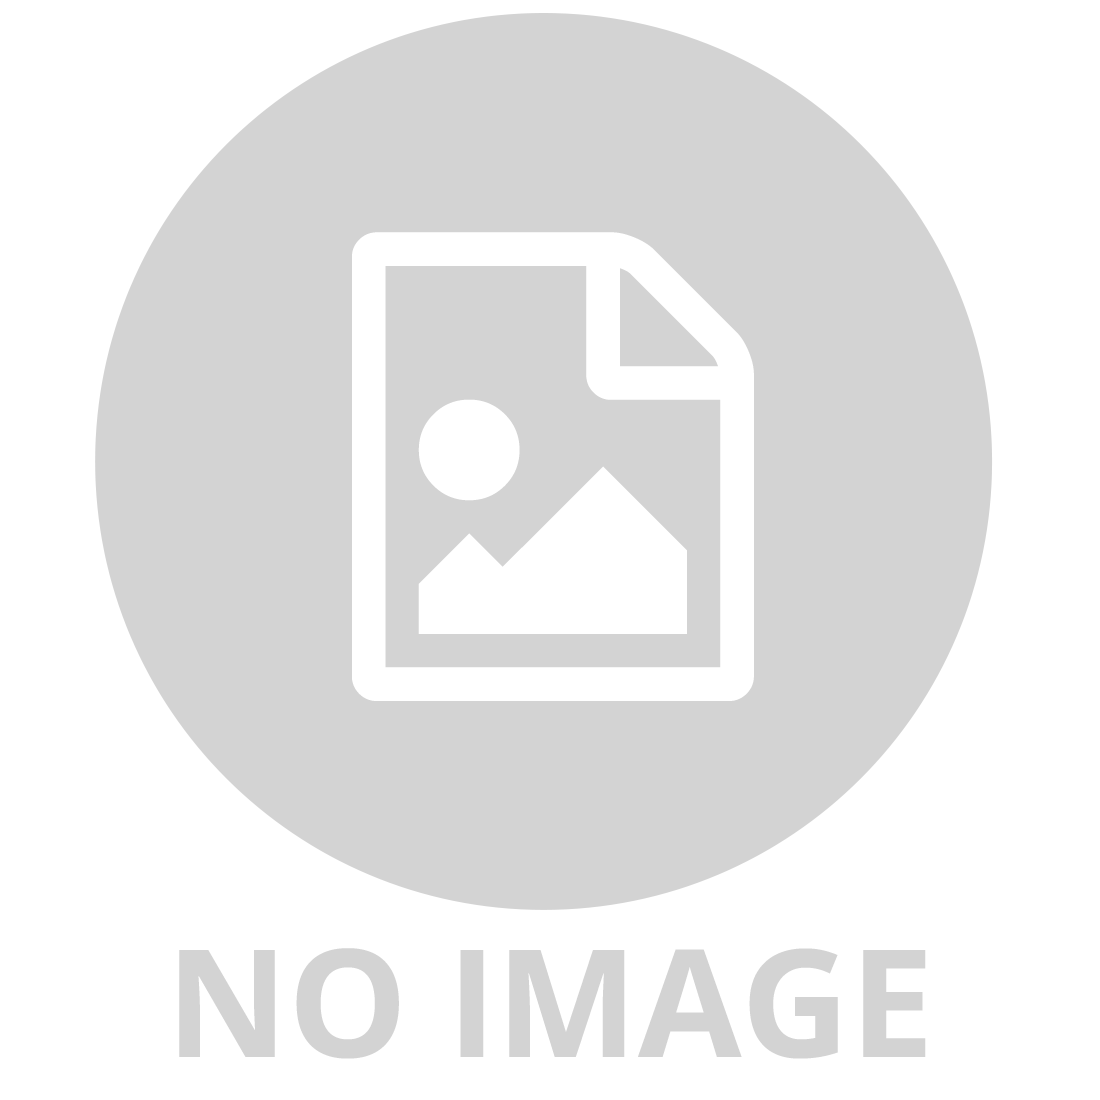 HUMBROL ENAMEL PAINT GLOSS MIDNIGHT BLUE #15